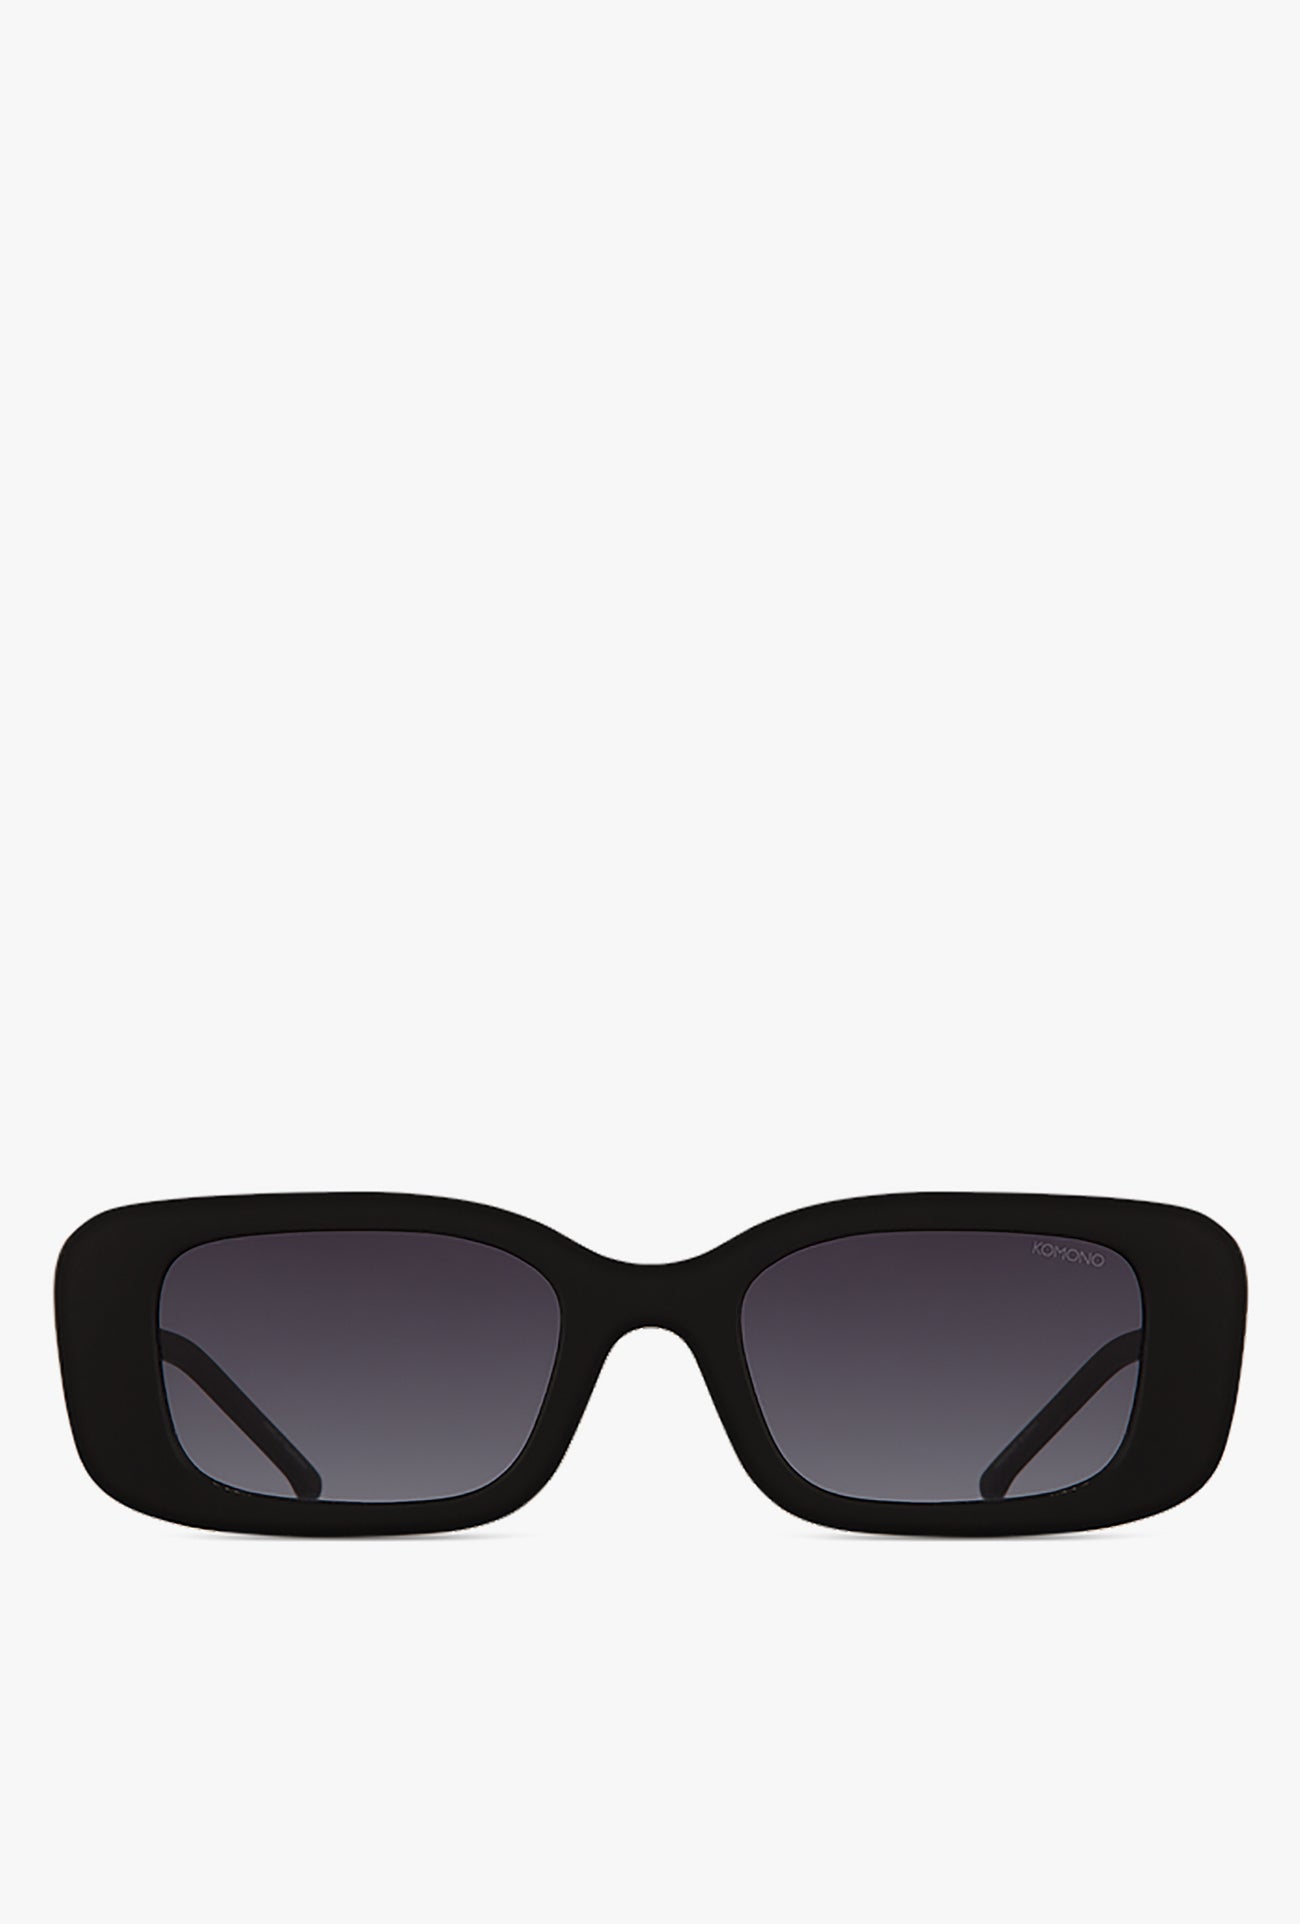 Marco Sunglasses - Carbon